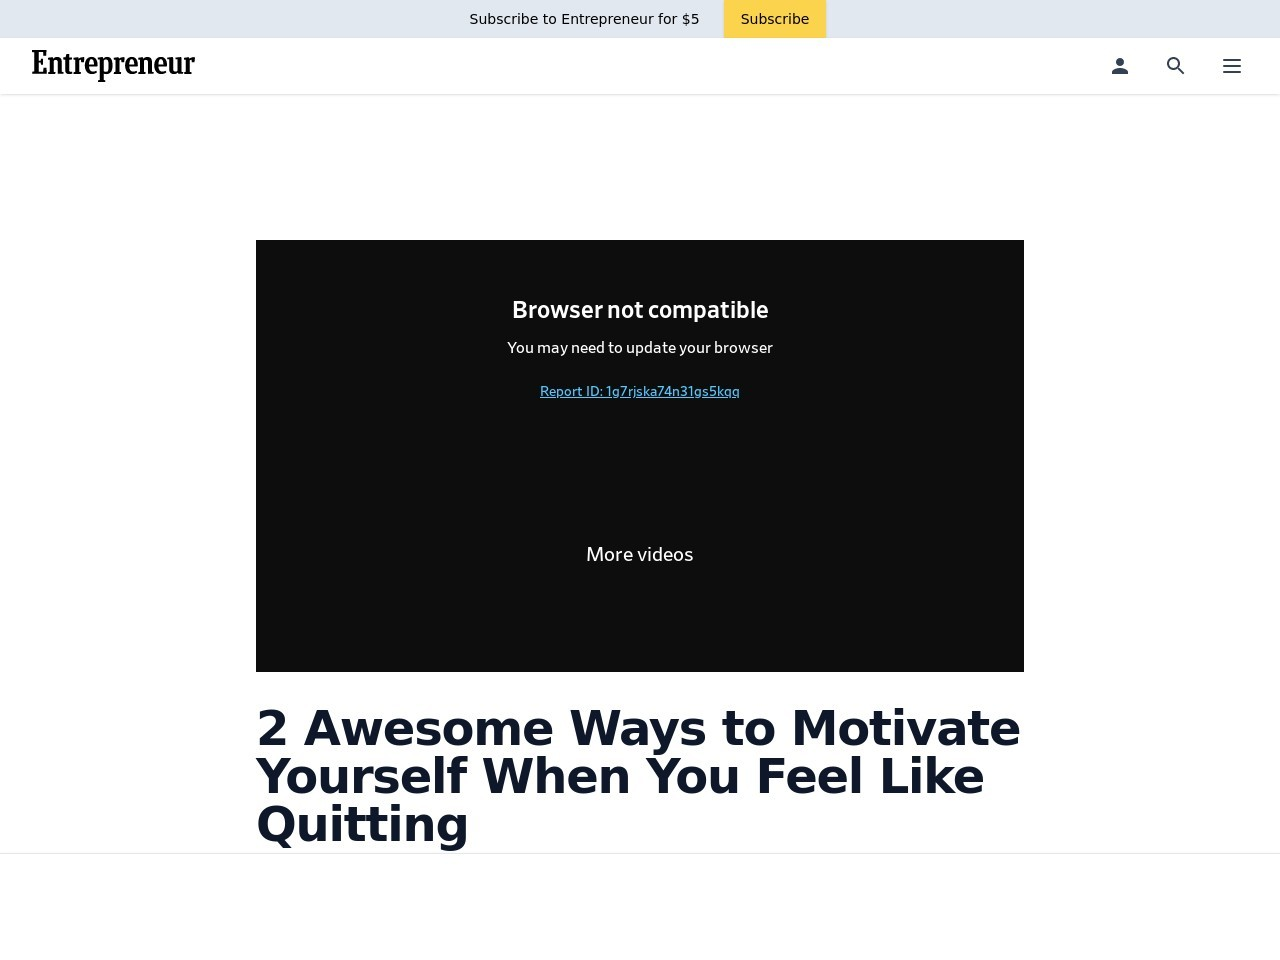 2 Awesome Ways to Motivate Yourself When You Feel Like Quitting